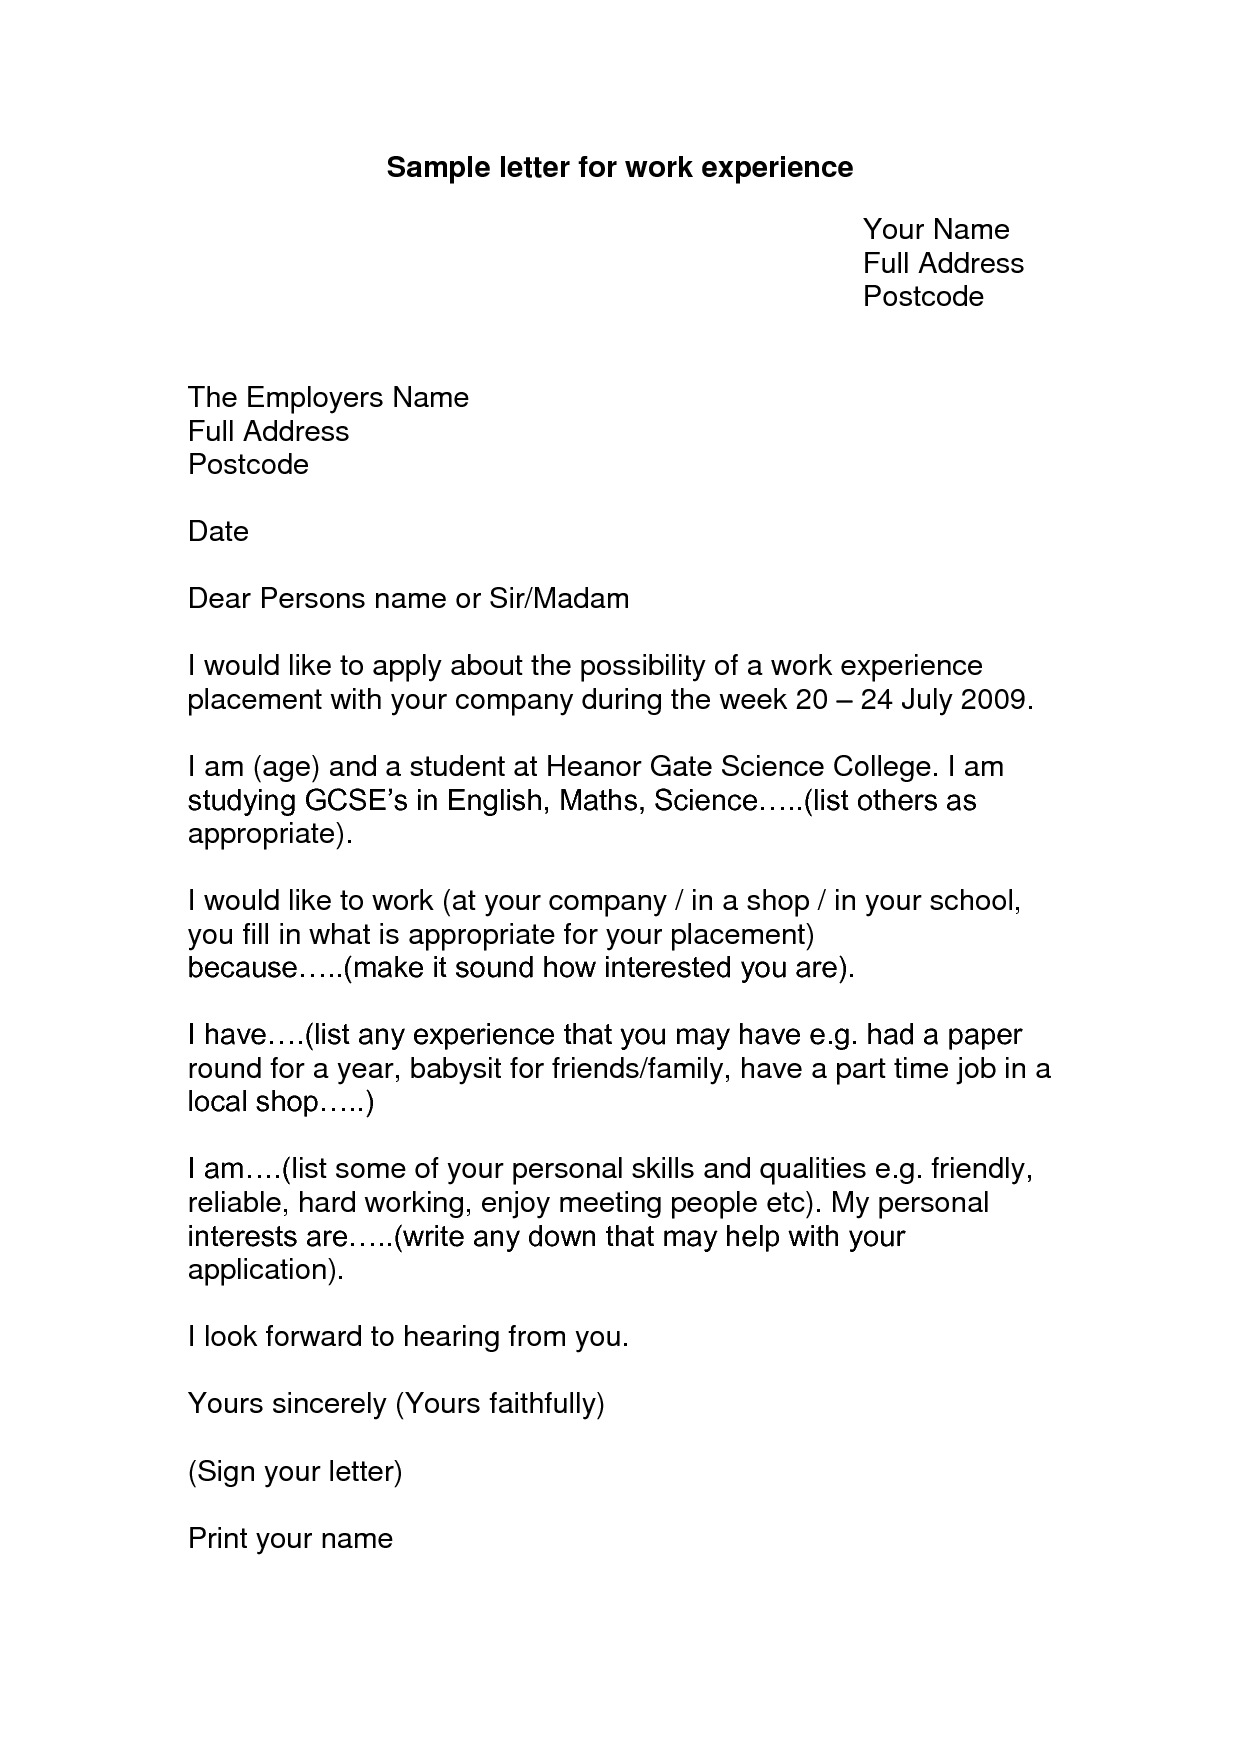 work experience letter example - Google Search | Looking for jobs ...